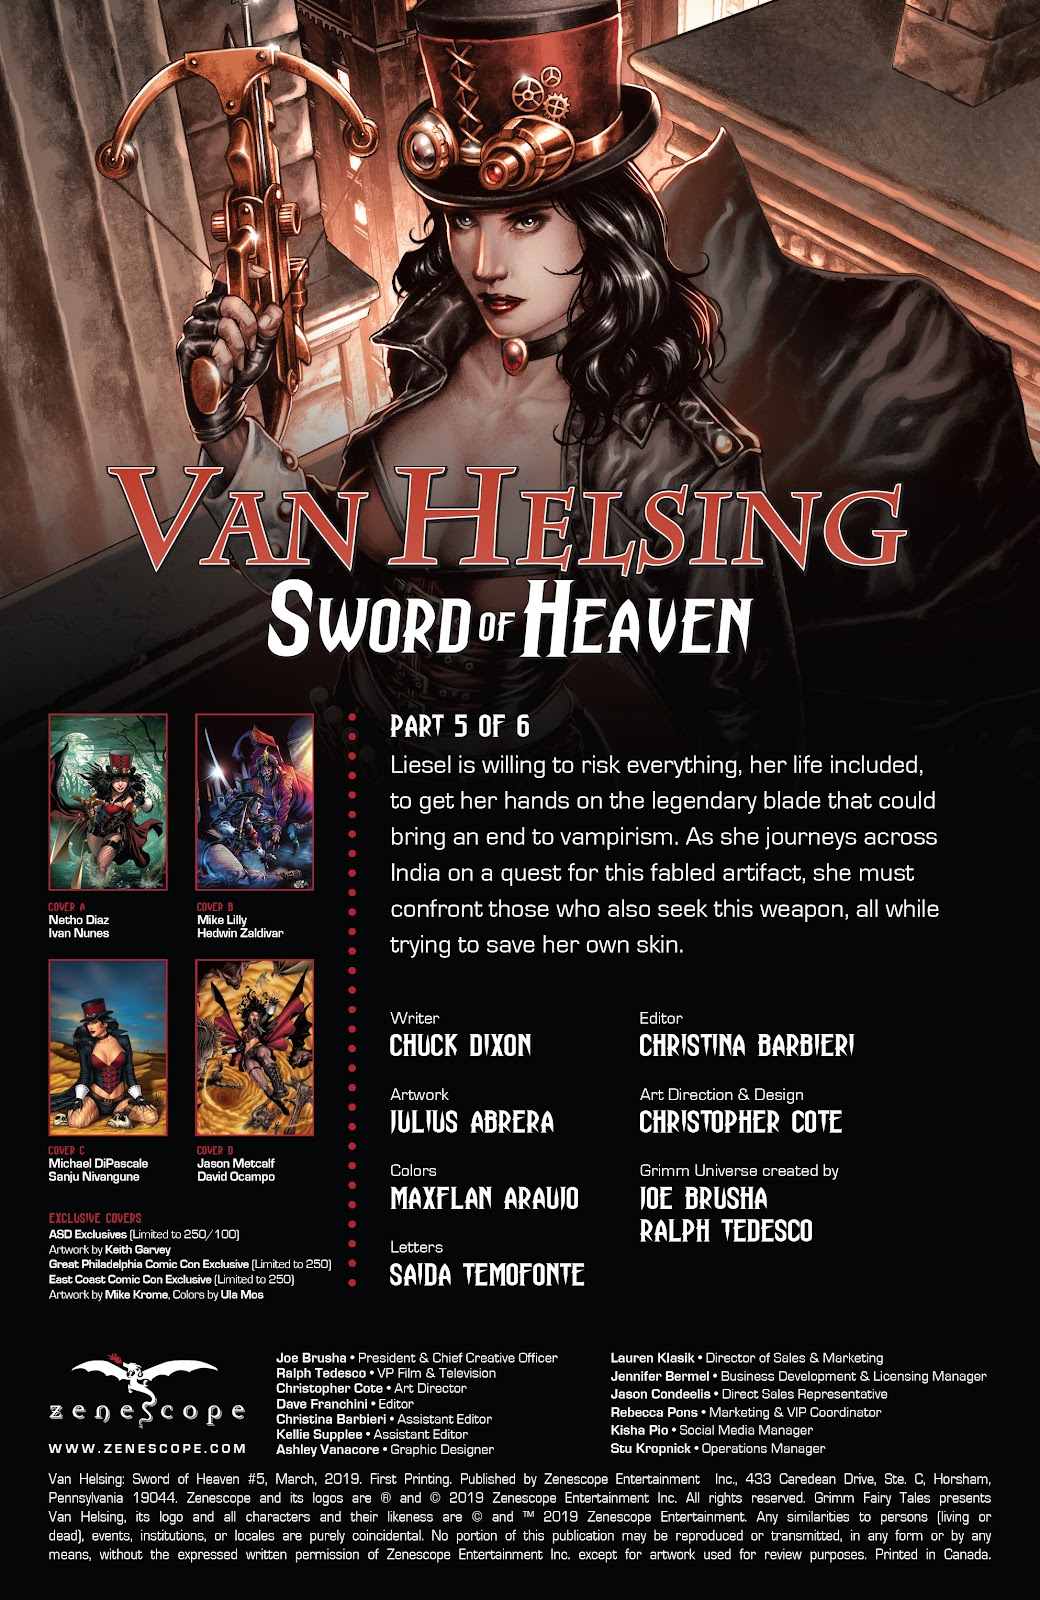 Read online Van Helsing: Sword of Heaven comic -  Issue #5 - 2